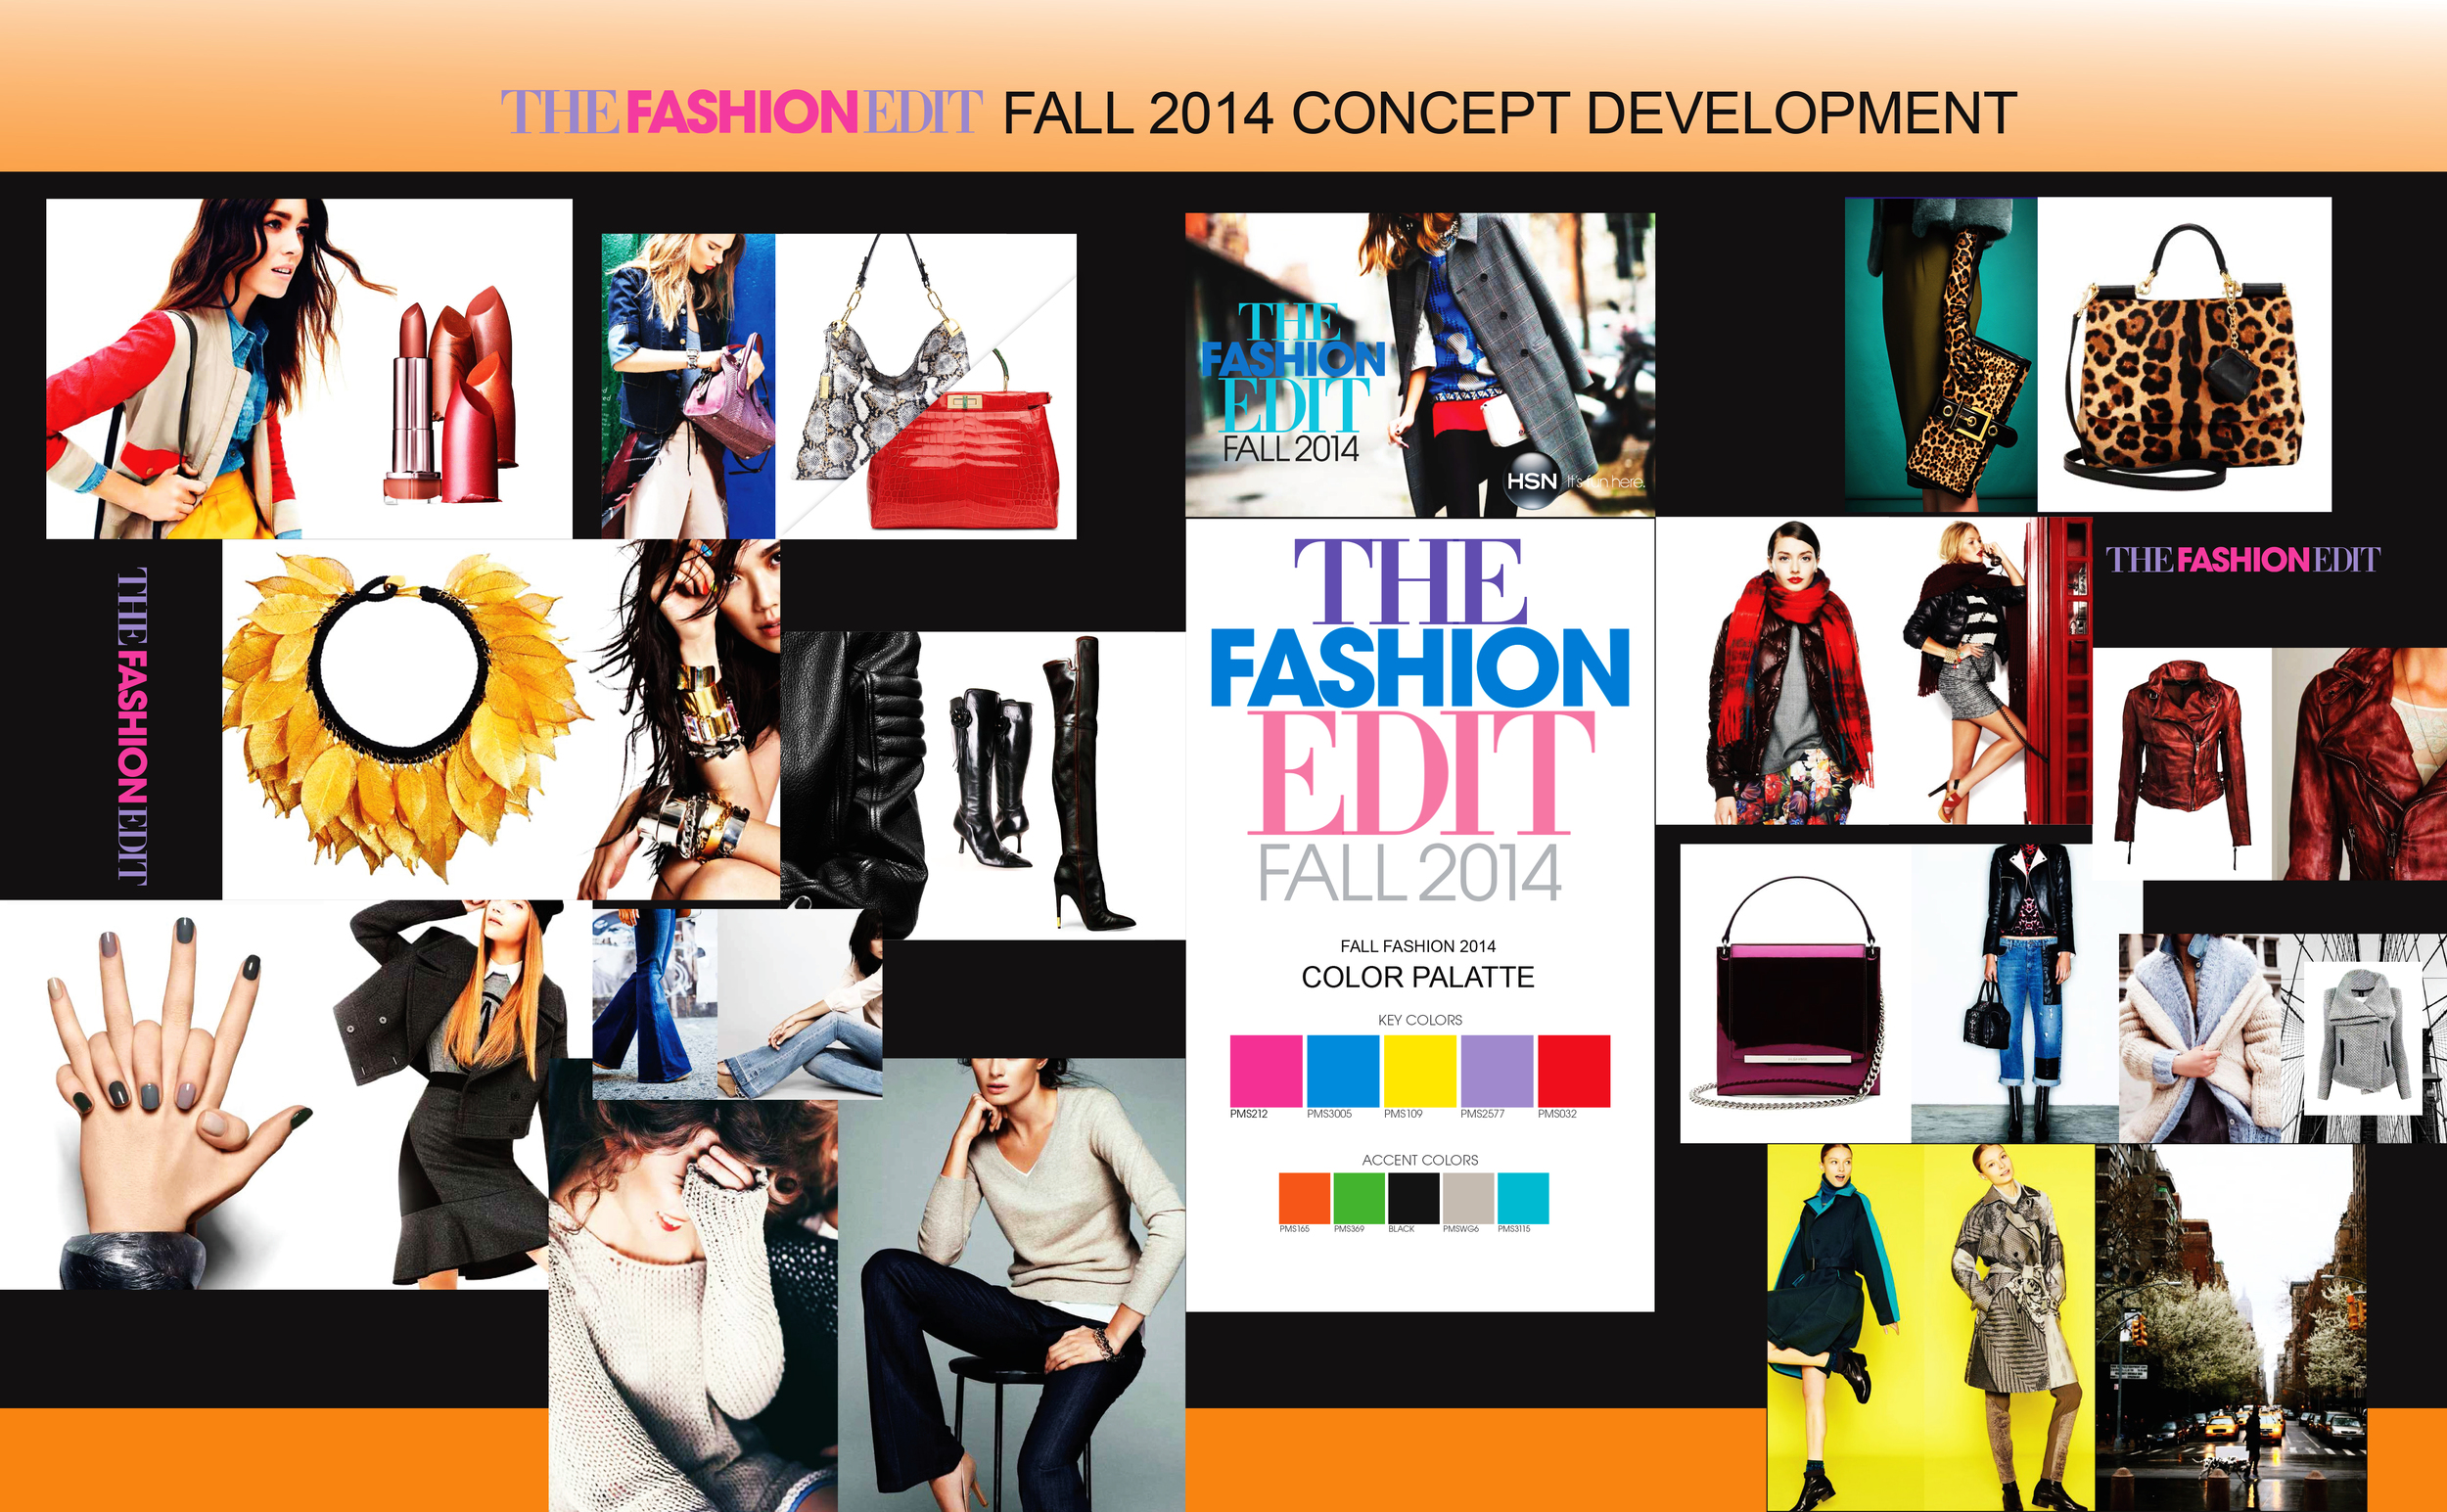 Drove The Fashion Edit Fall 2014.  Concept the  campaign from the collaboration with Copy,  Photography, Merchants, Social Content, Network, Motion, Digital and Marketing down to the details of styling to background colors to message and more.